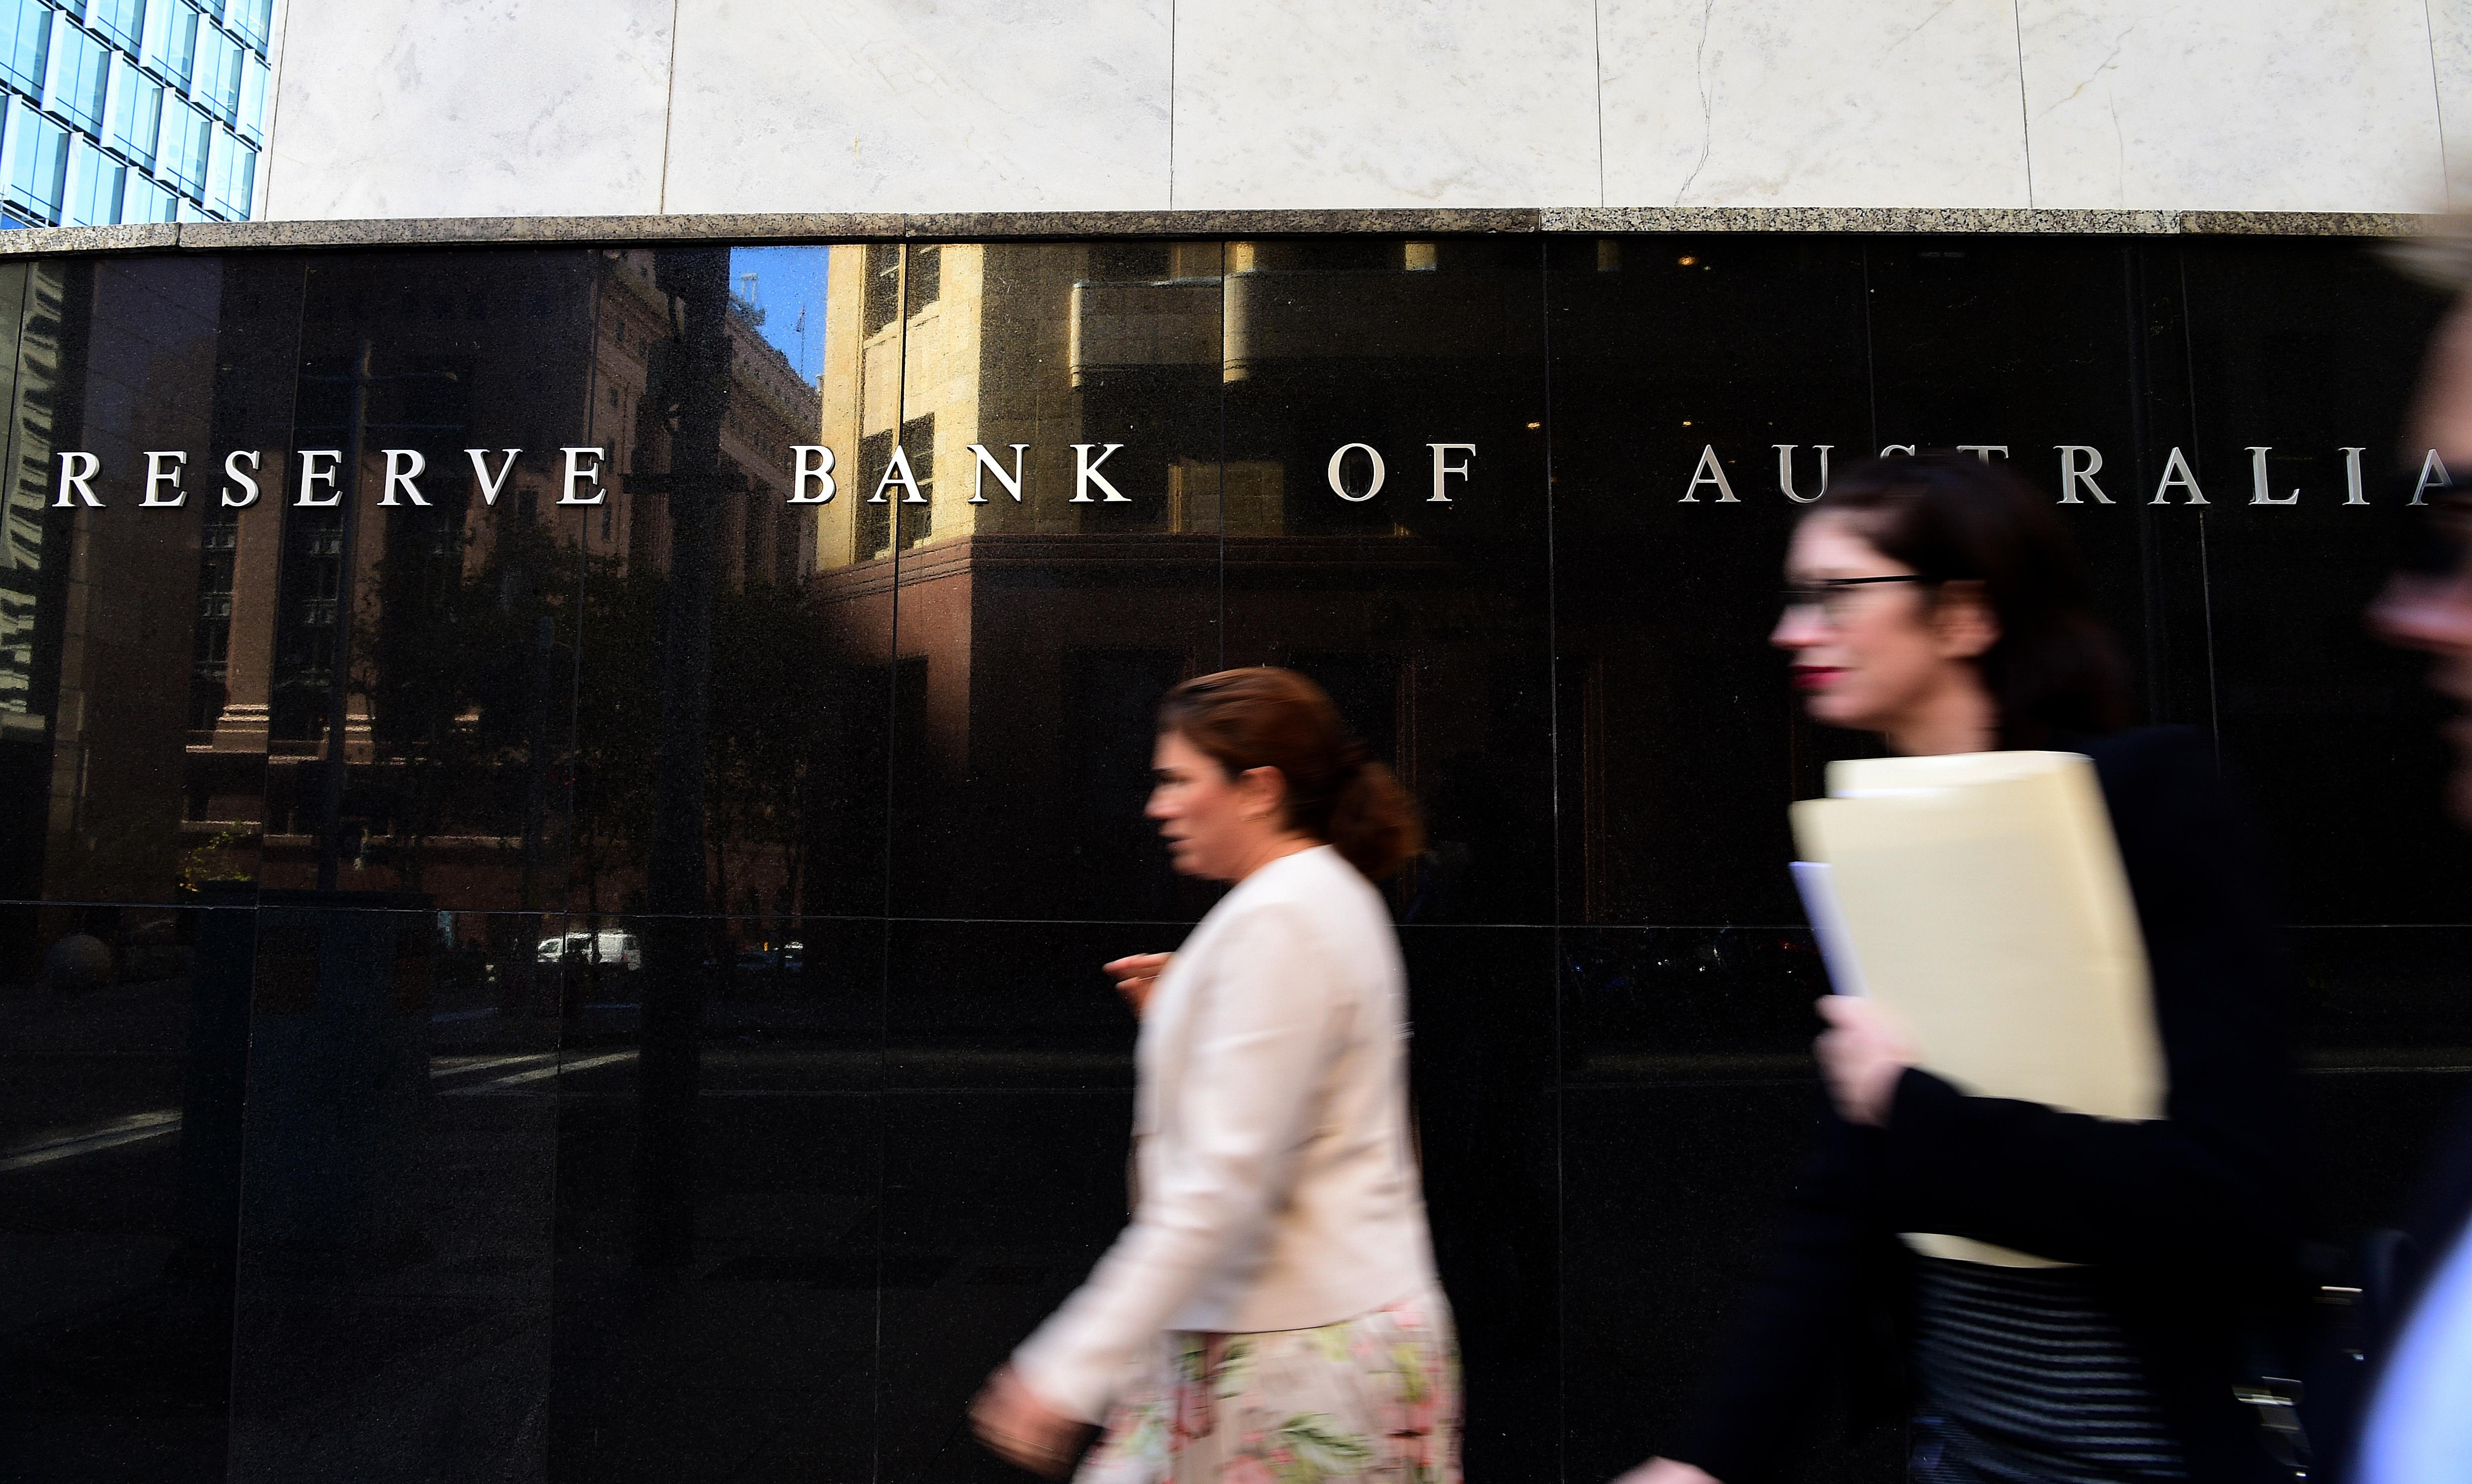 Australia's unemployment rate rises to 5.2%, adding pressure to interest rates